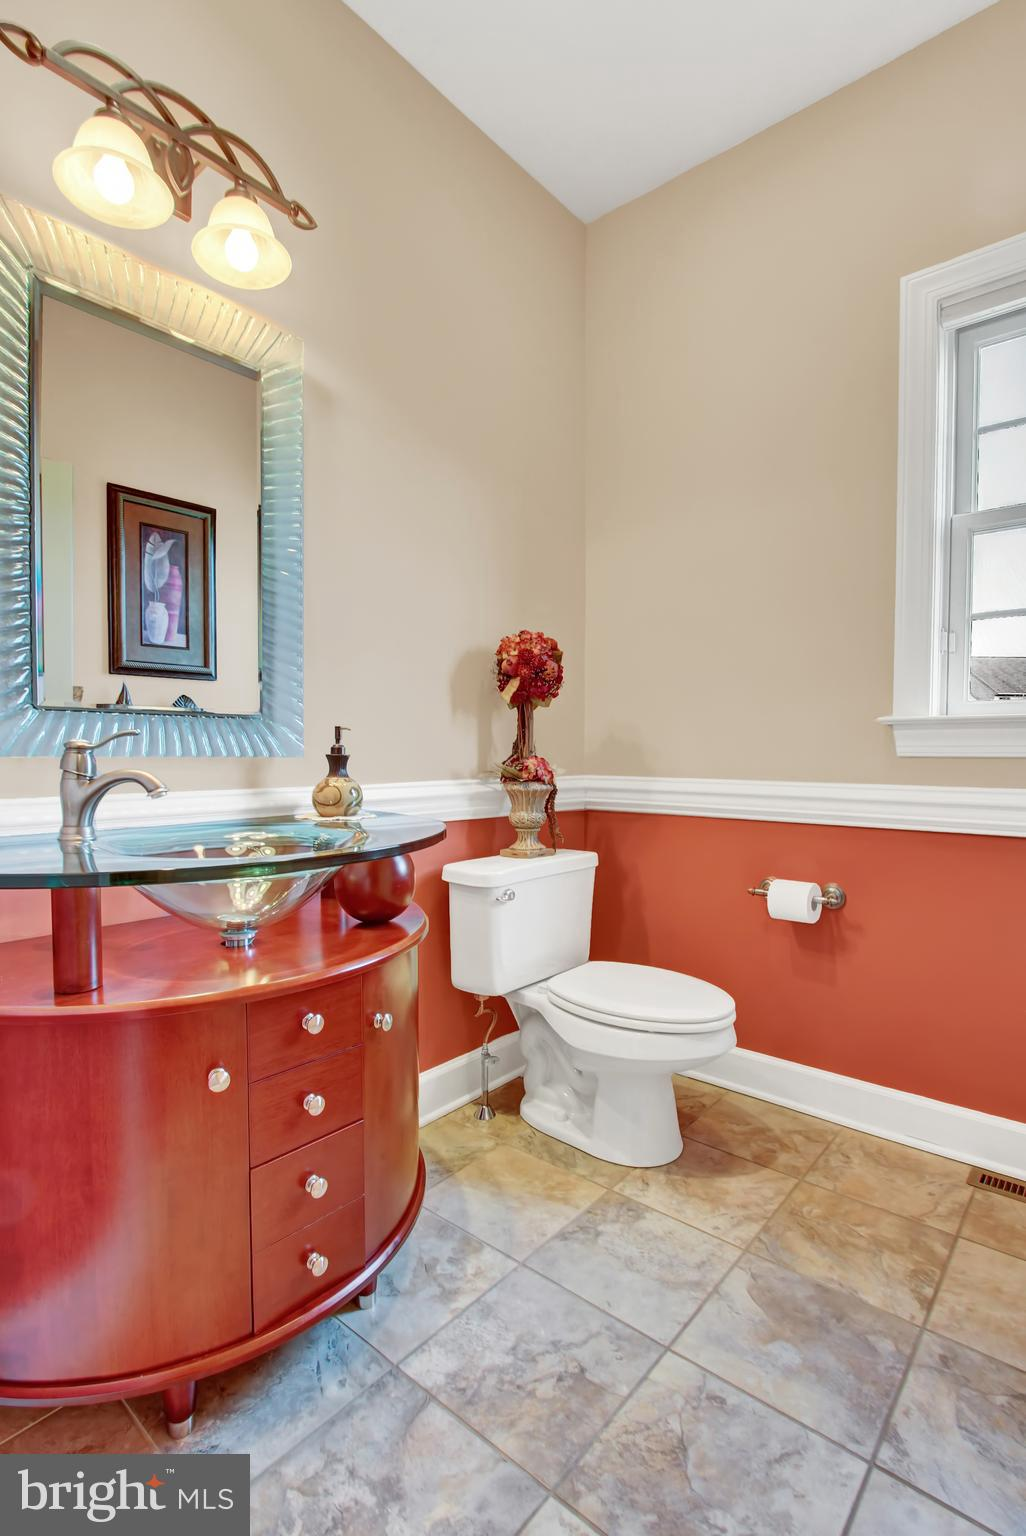 Half bath with glass bowl sink and tile flooring